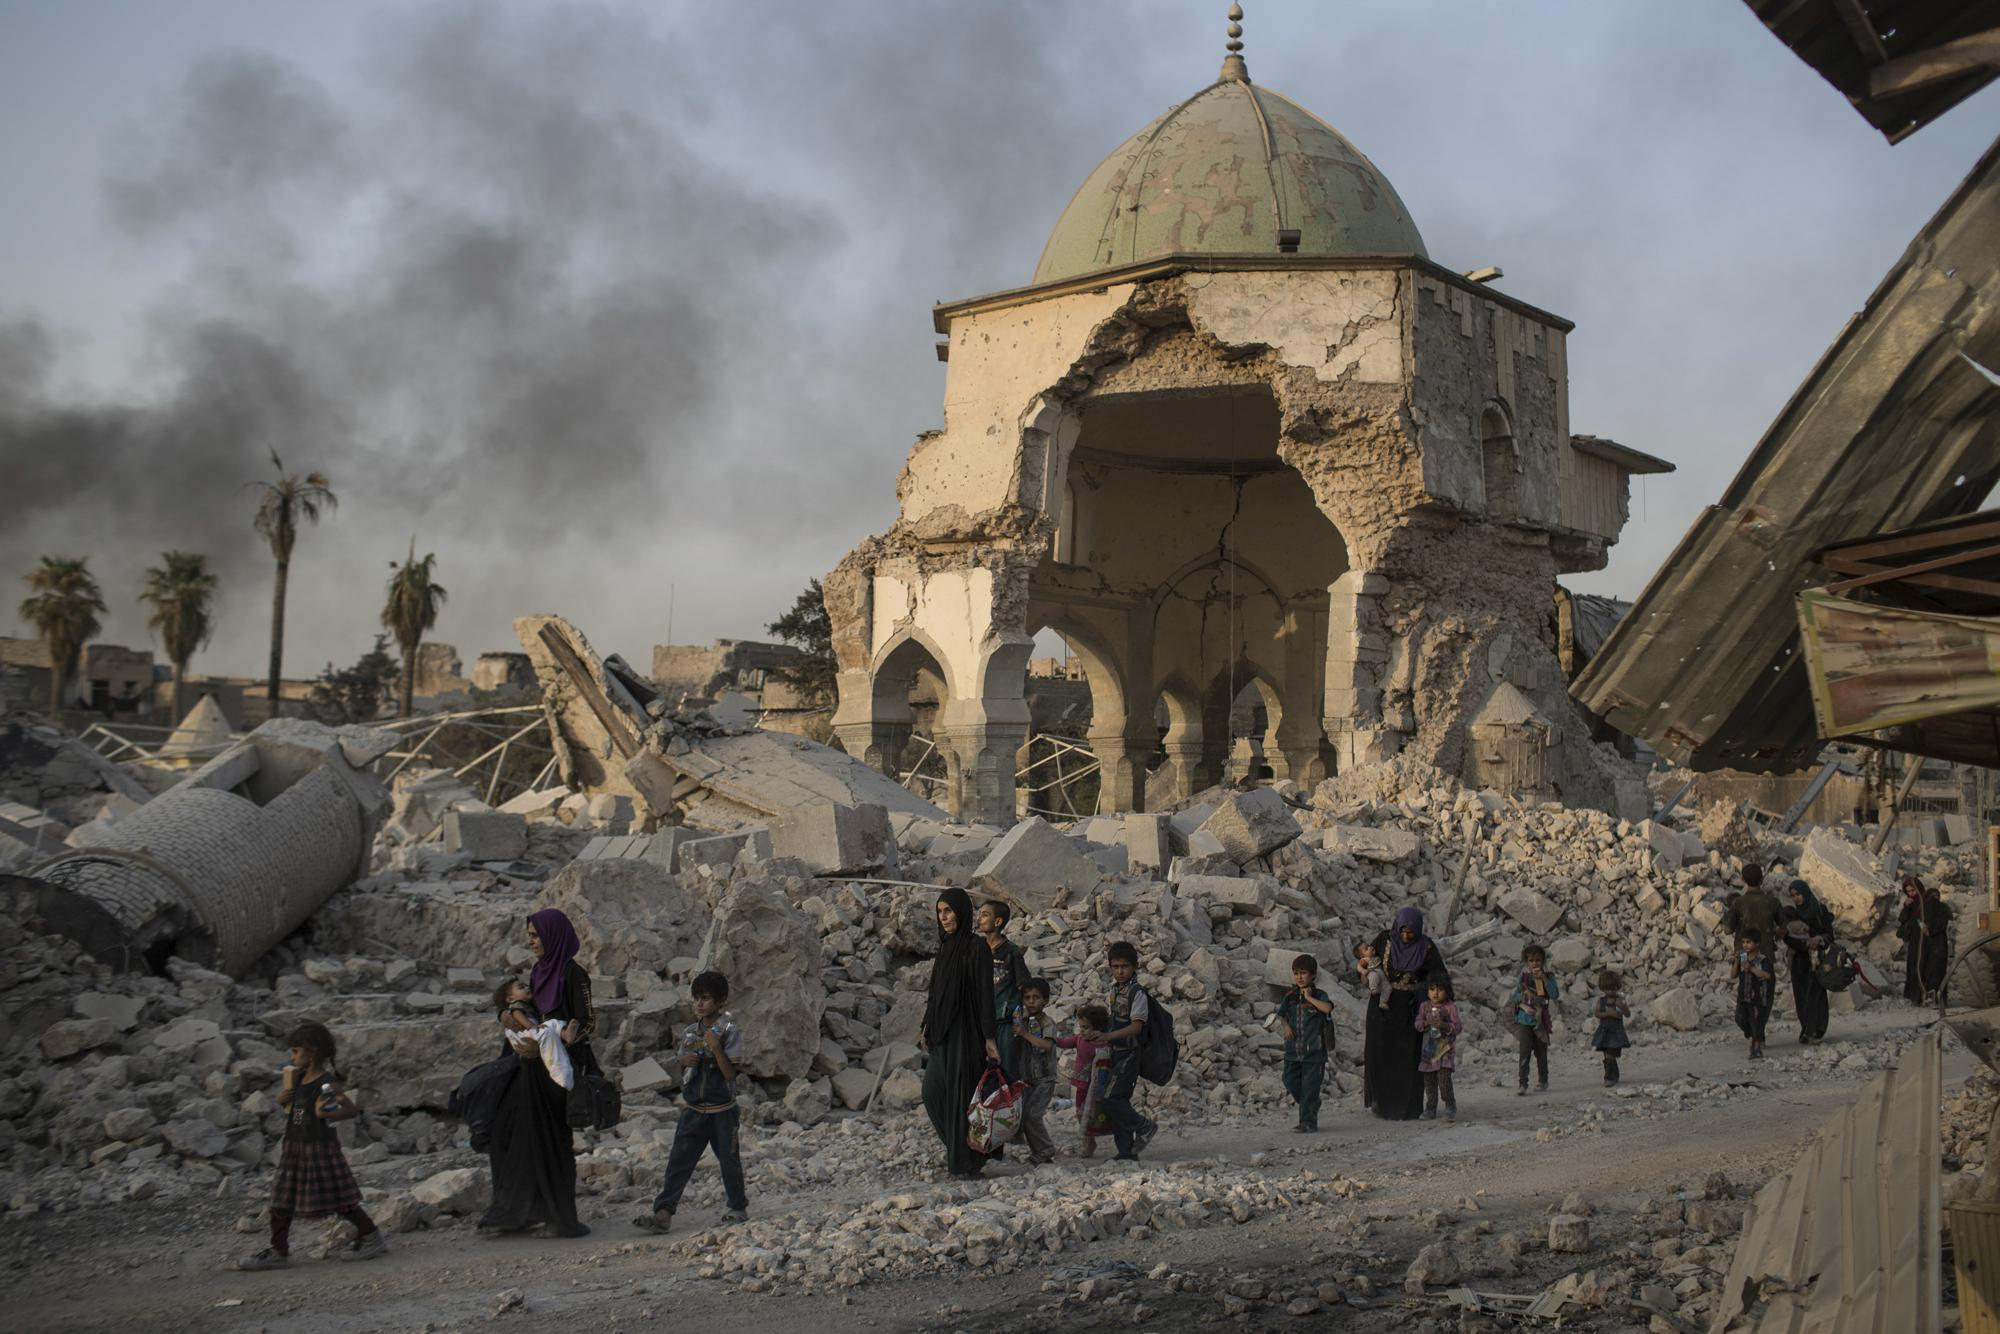 FILE - In this Tuesday, July 4, 2017 file photo, fleeing Iraqi civilians walk past the heavily damaged al-Nuri mosque as Iraqi forces continue their advance against Islamic State militants in the Old City of Mosul, Iraq. As Iraqi forces continued to advance on the last few hundred square kilometers of Mosul held by the Islamic State group, the country's Prime Minister said Tuesday the gains show Iraqis reject terrorism. (AP Photo/Felipe Dana, File)